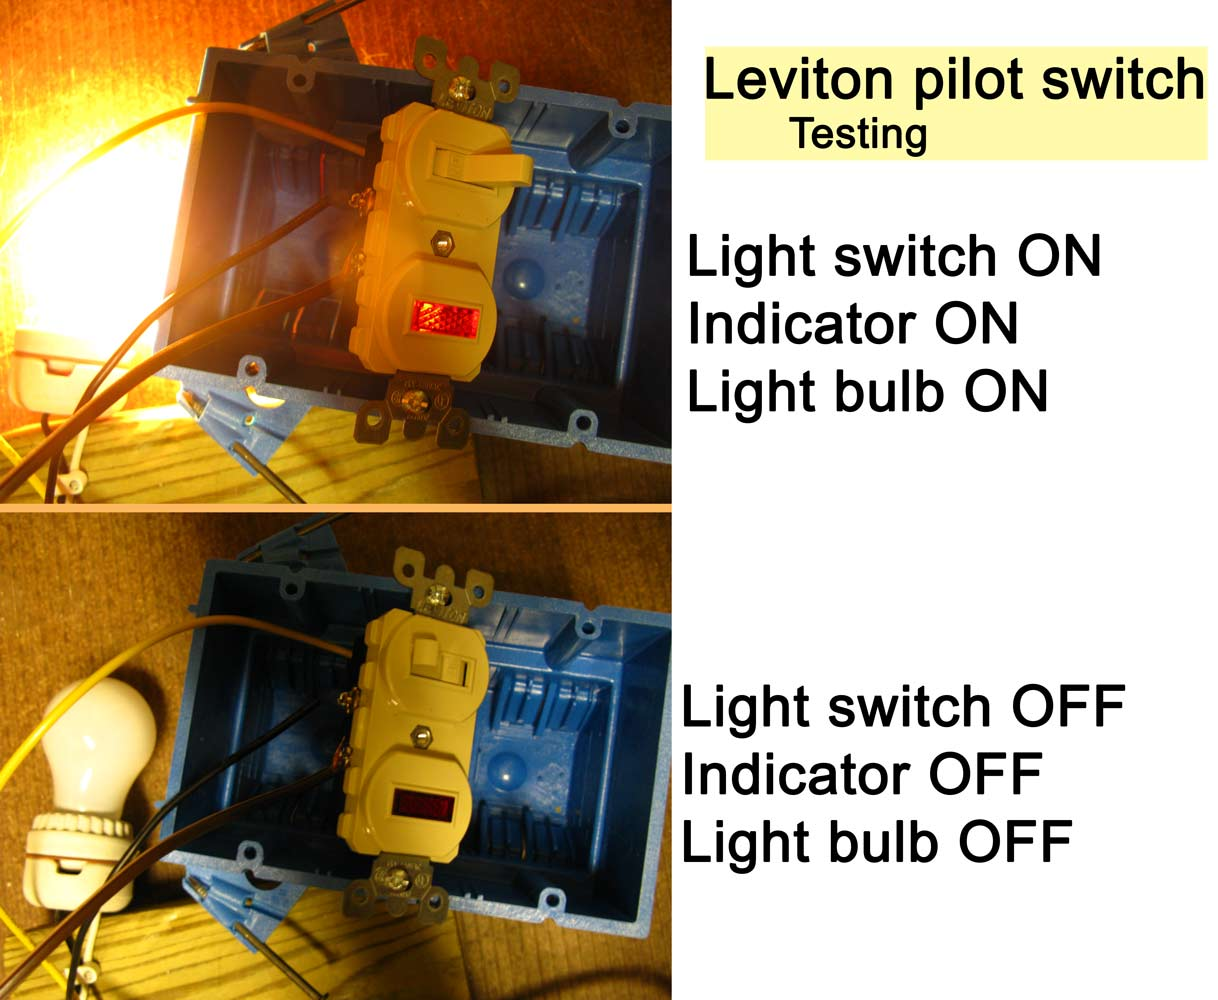 How To Wire Cooper 277 Pilot Light Switch Leviton Decora 3 Way Wiring Diagram See Testing Photographs 1 2